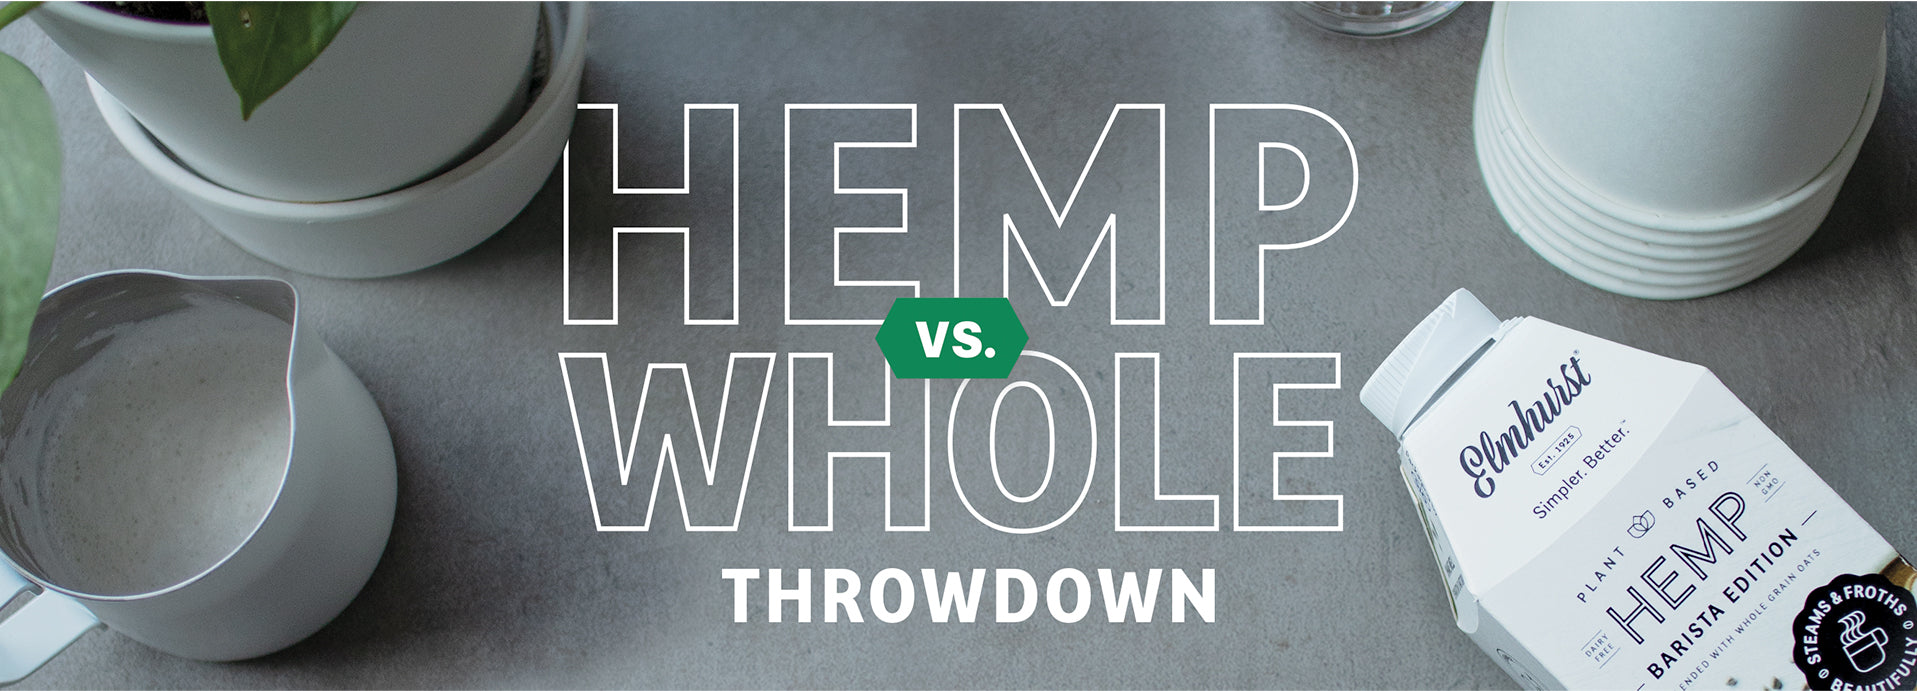 Hemp vs Whole Desktop